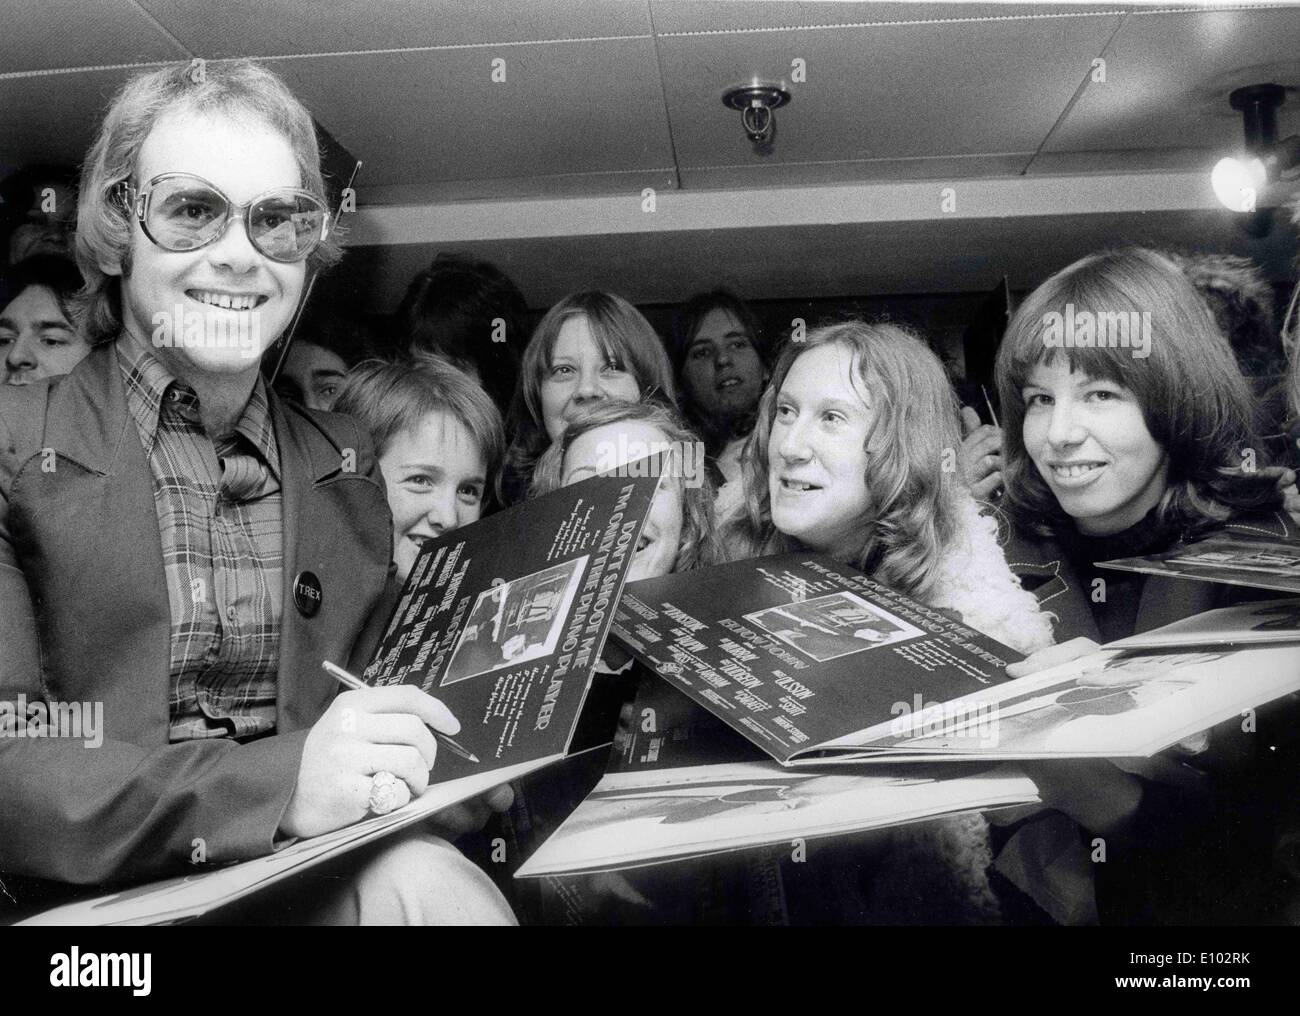 A young ELTON JOHN autographs albums for fans. - Stock Image